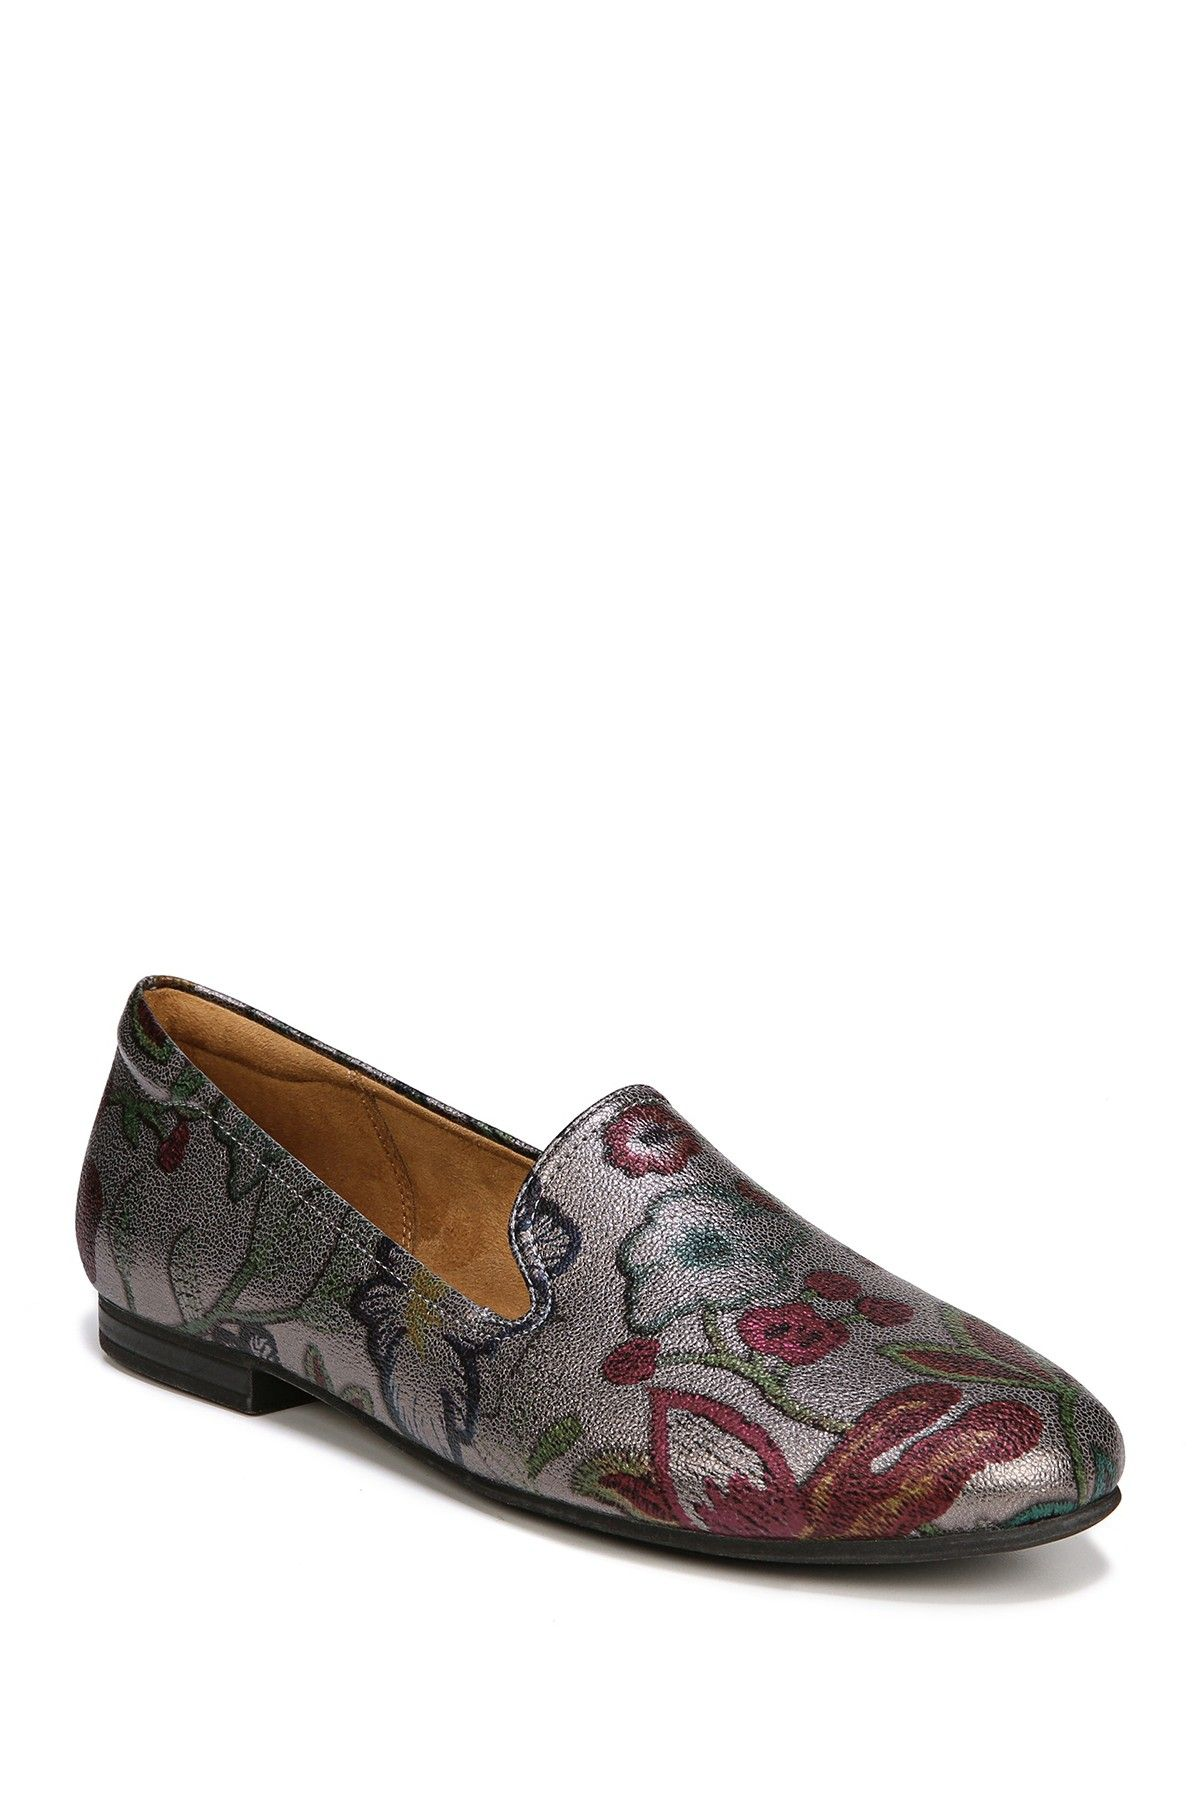 098f34cd675 Natural Soul - Alexis Slip-On Loafer - Wide Width Available is now 42% off.  Free Shipping on orders over  100.